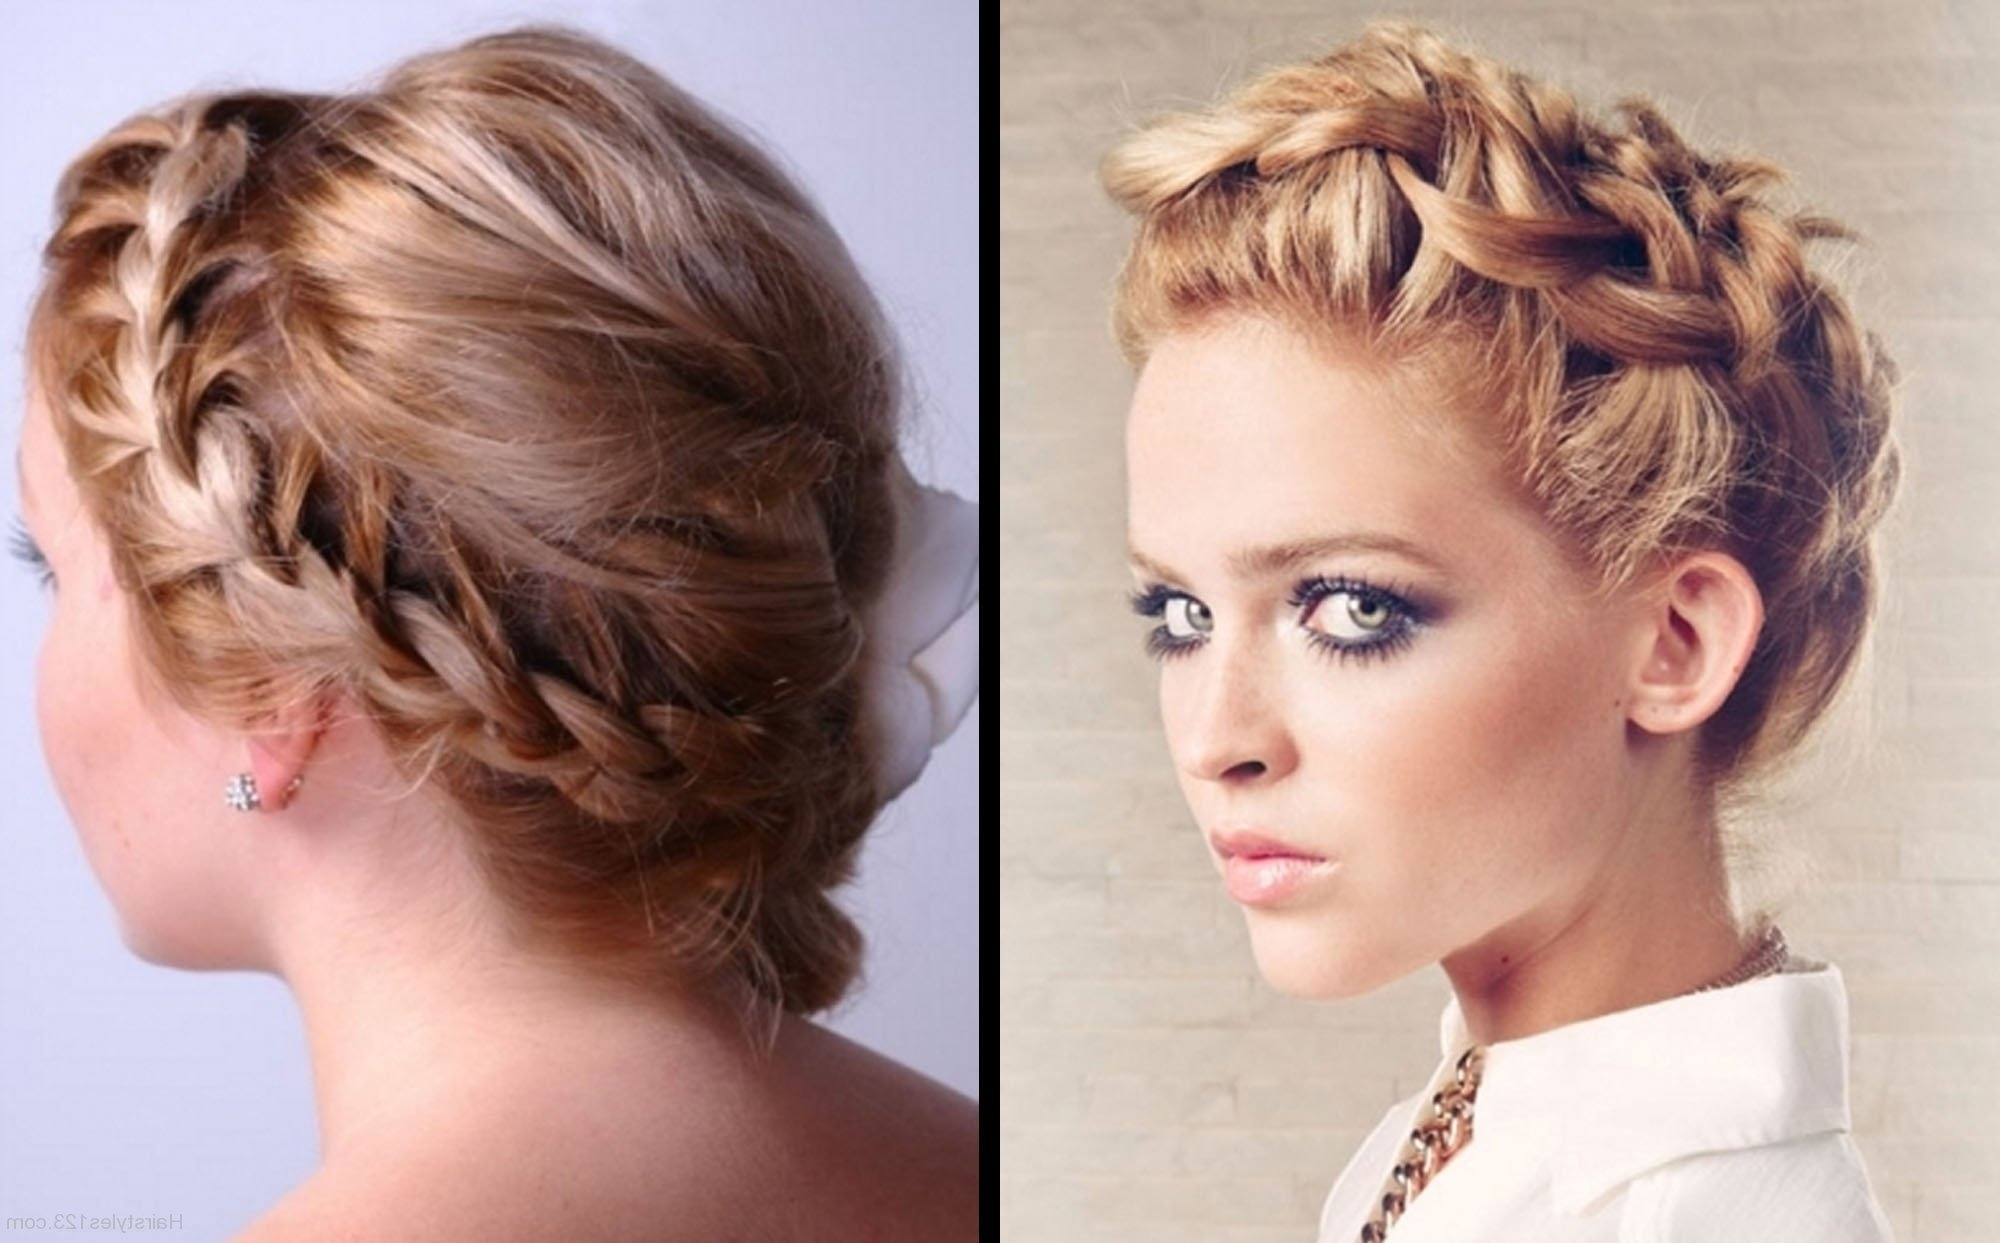 Current Updo Braided Hairstyles For Braided Updos For Short Hair – Hairstyles Ideas (View 12 of 15)